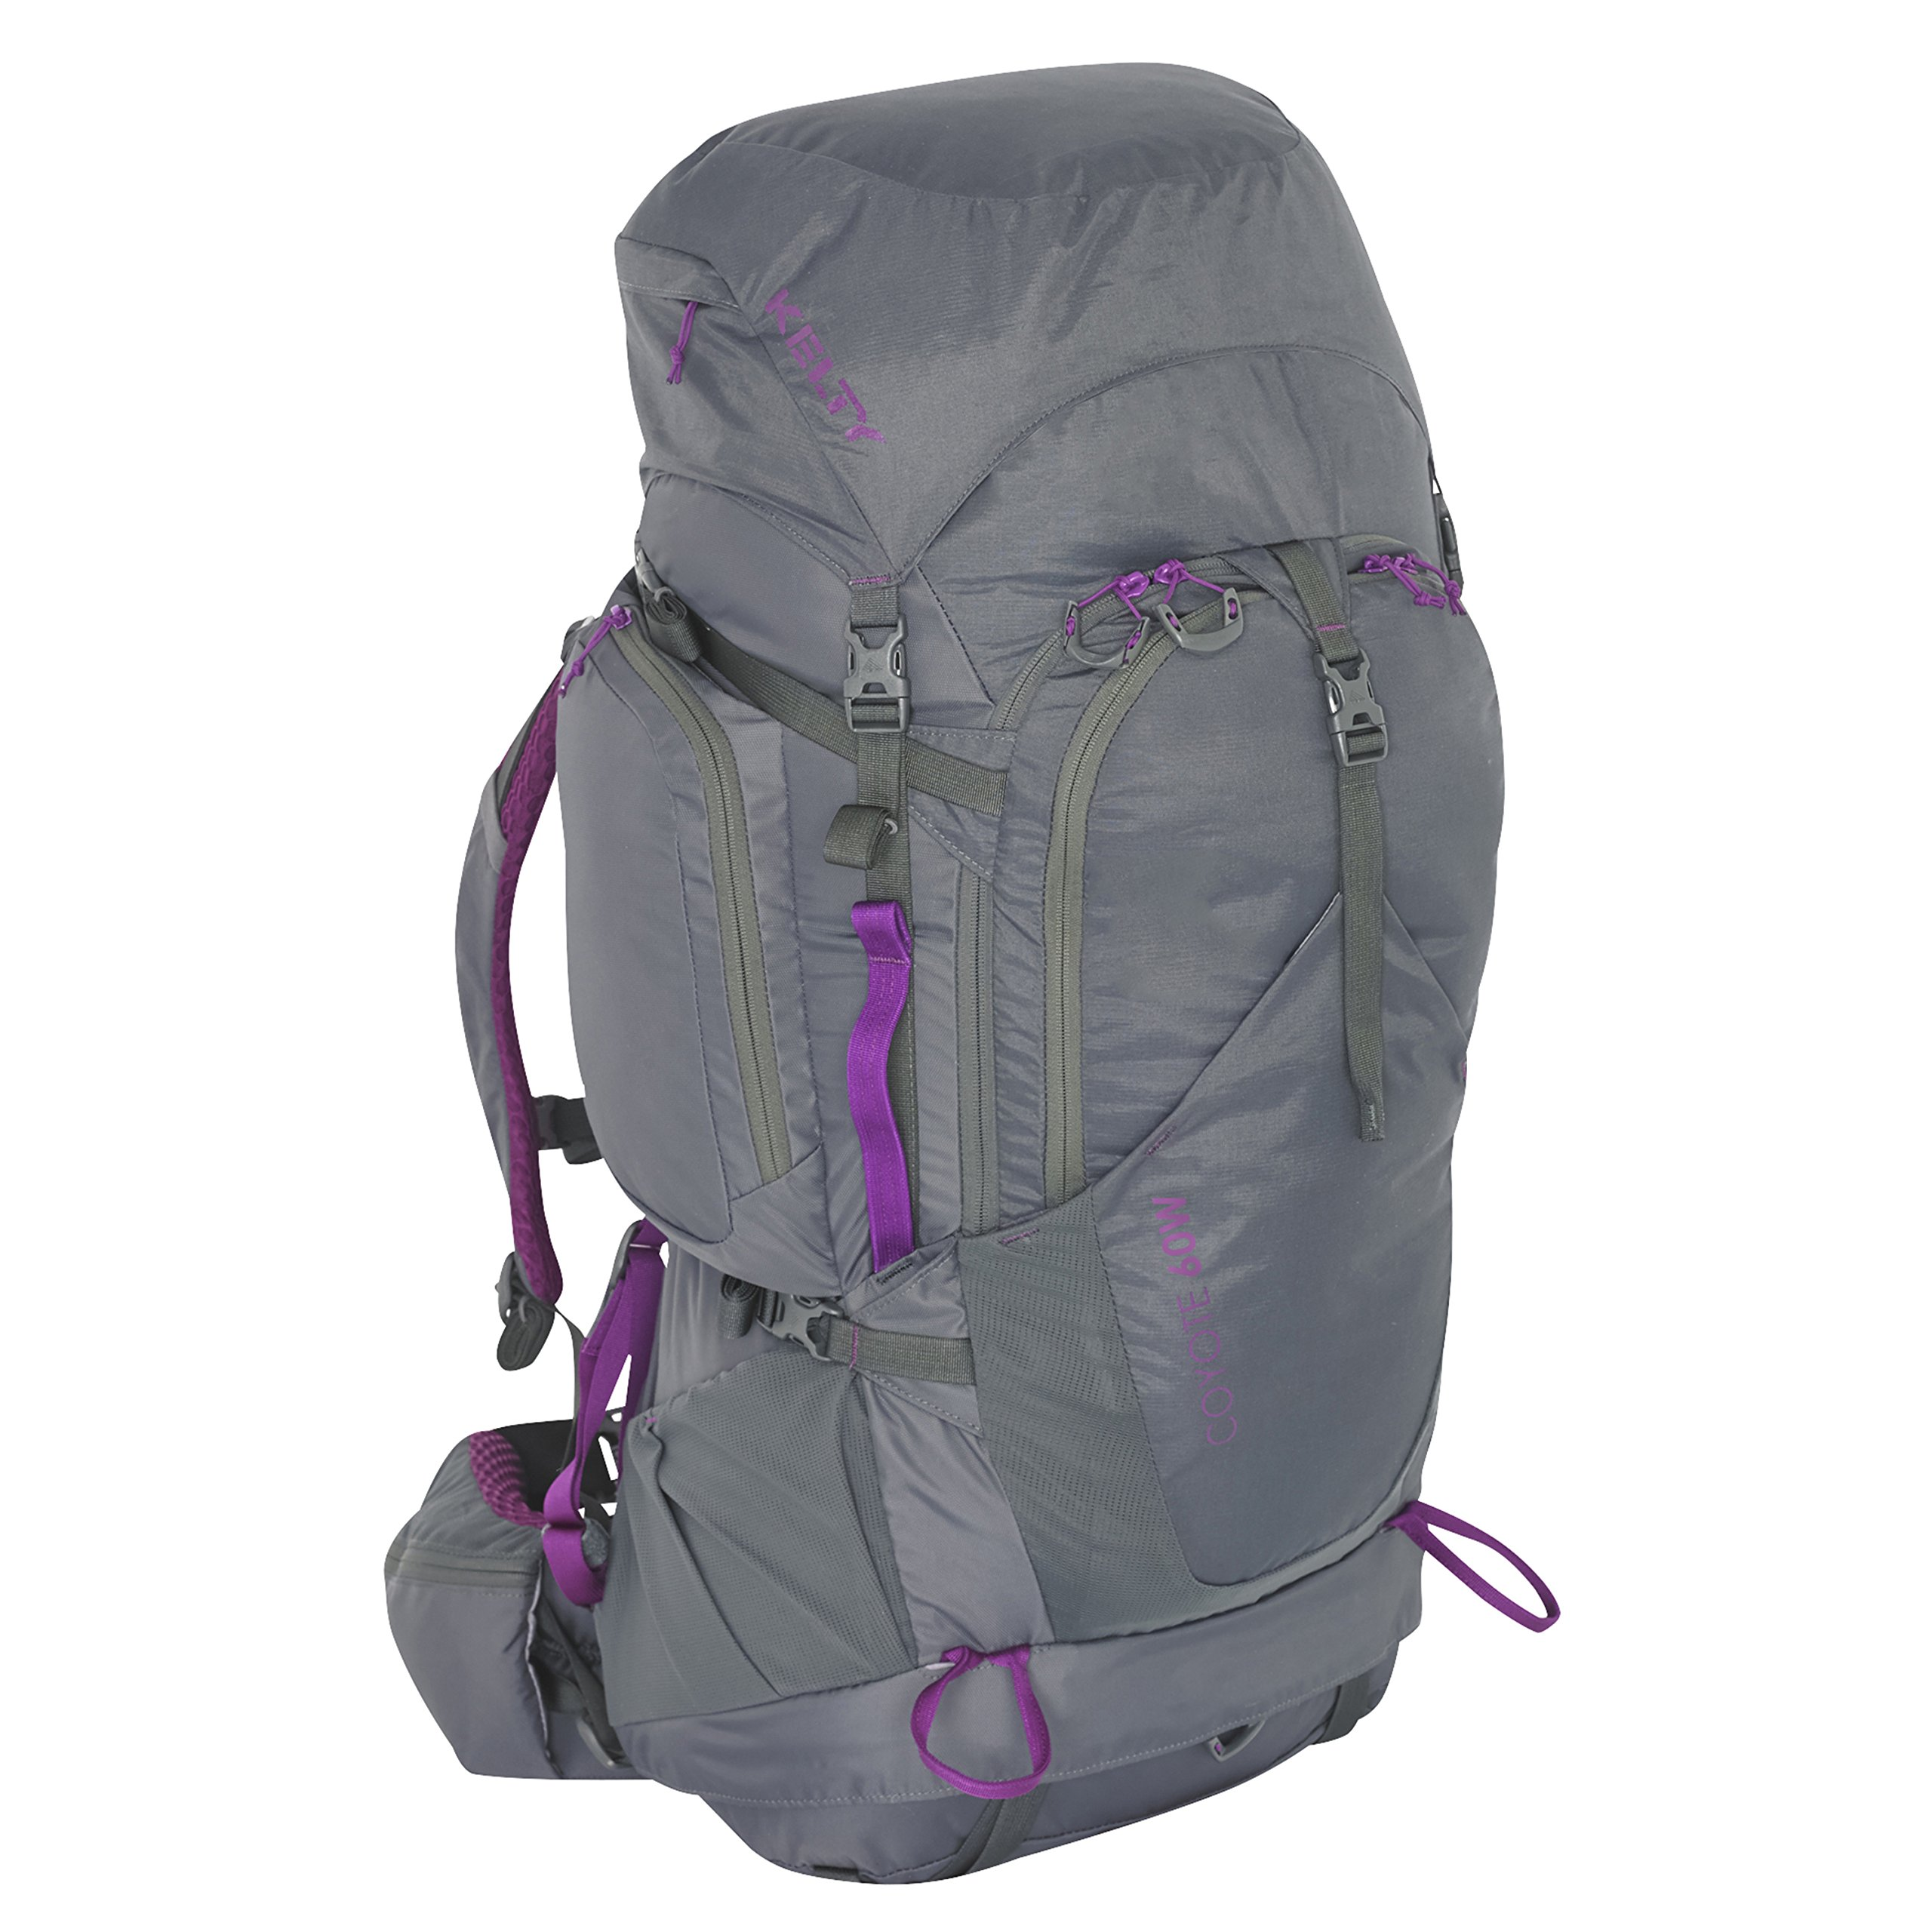 Kelty Women's Coyote 60 Backpack, Dark Shadow by Kelty